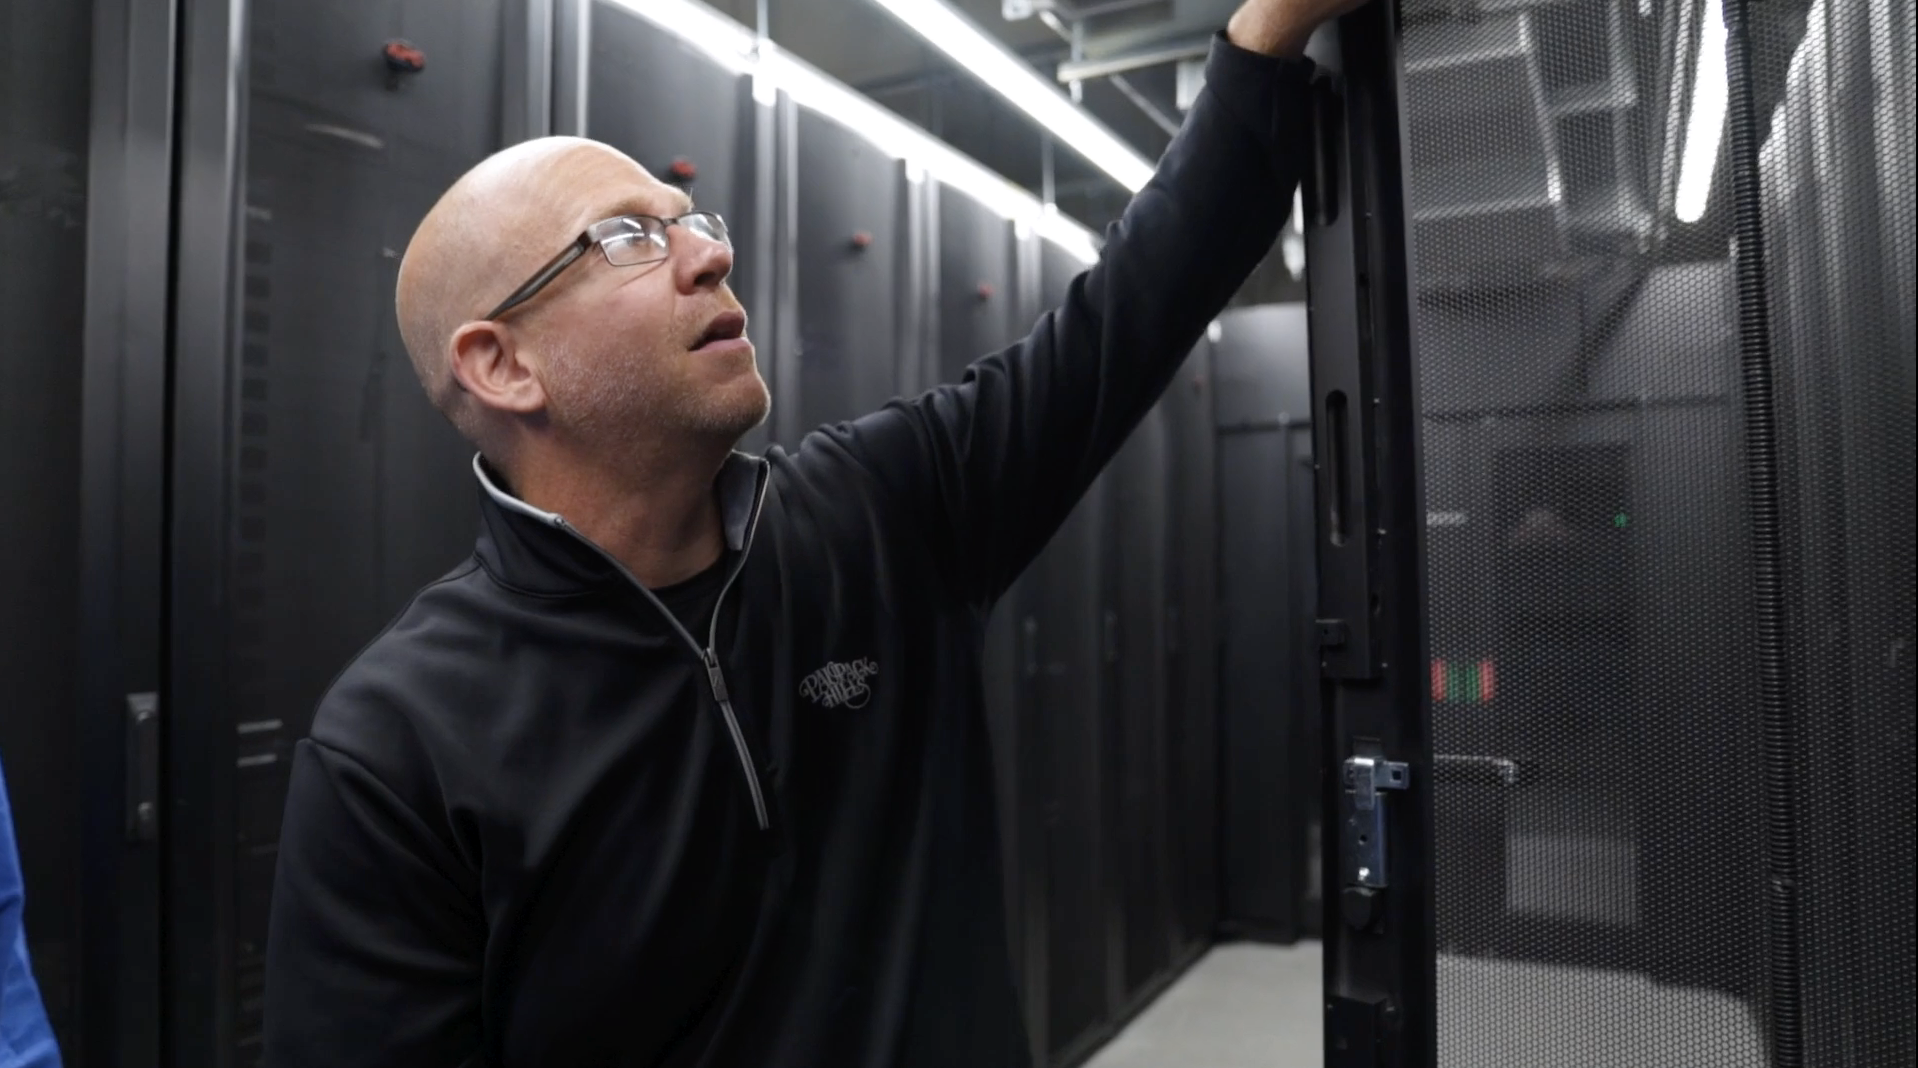 Image of man opening a server rack